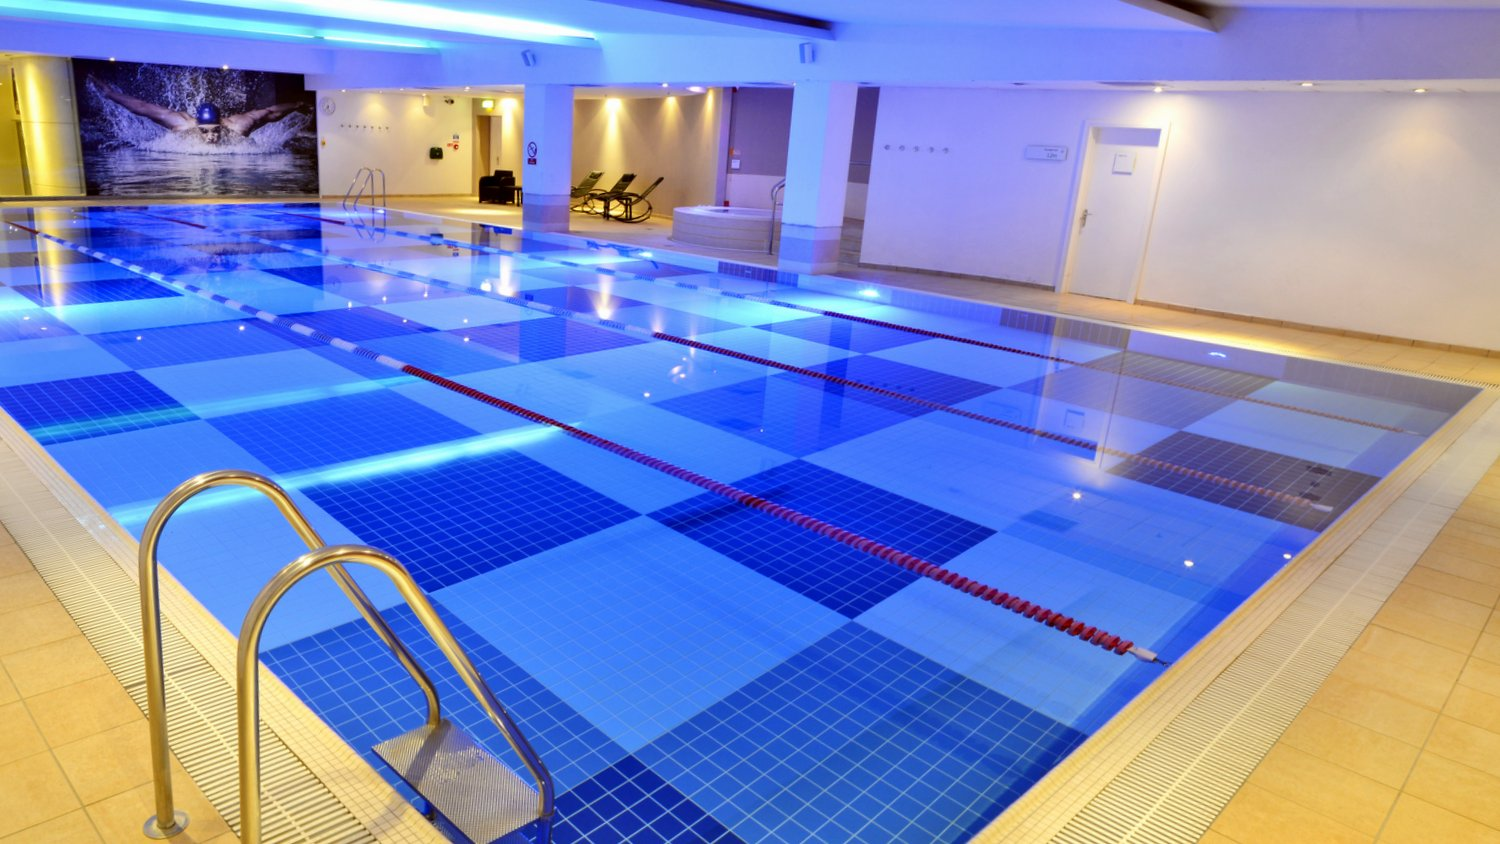 Jacuzzi Pool Opening Kit Gym In Moorgate Fitness And Wellbeing Nuffield Health